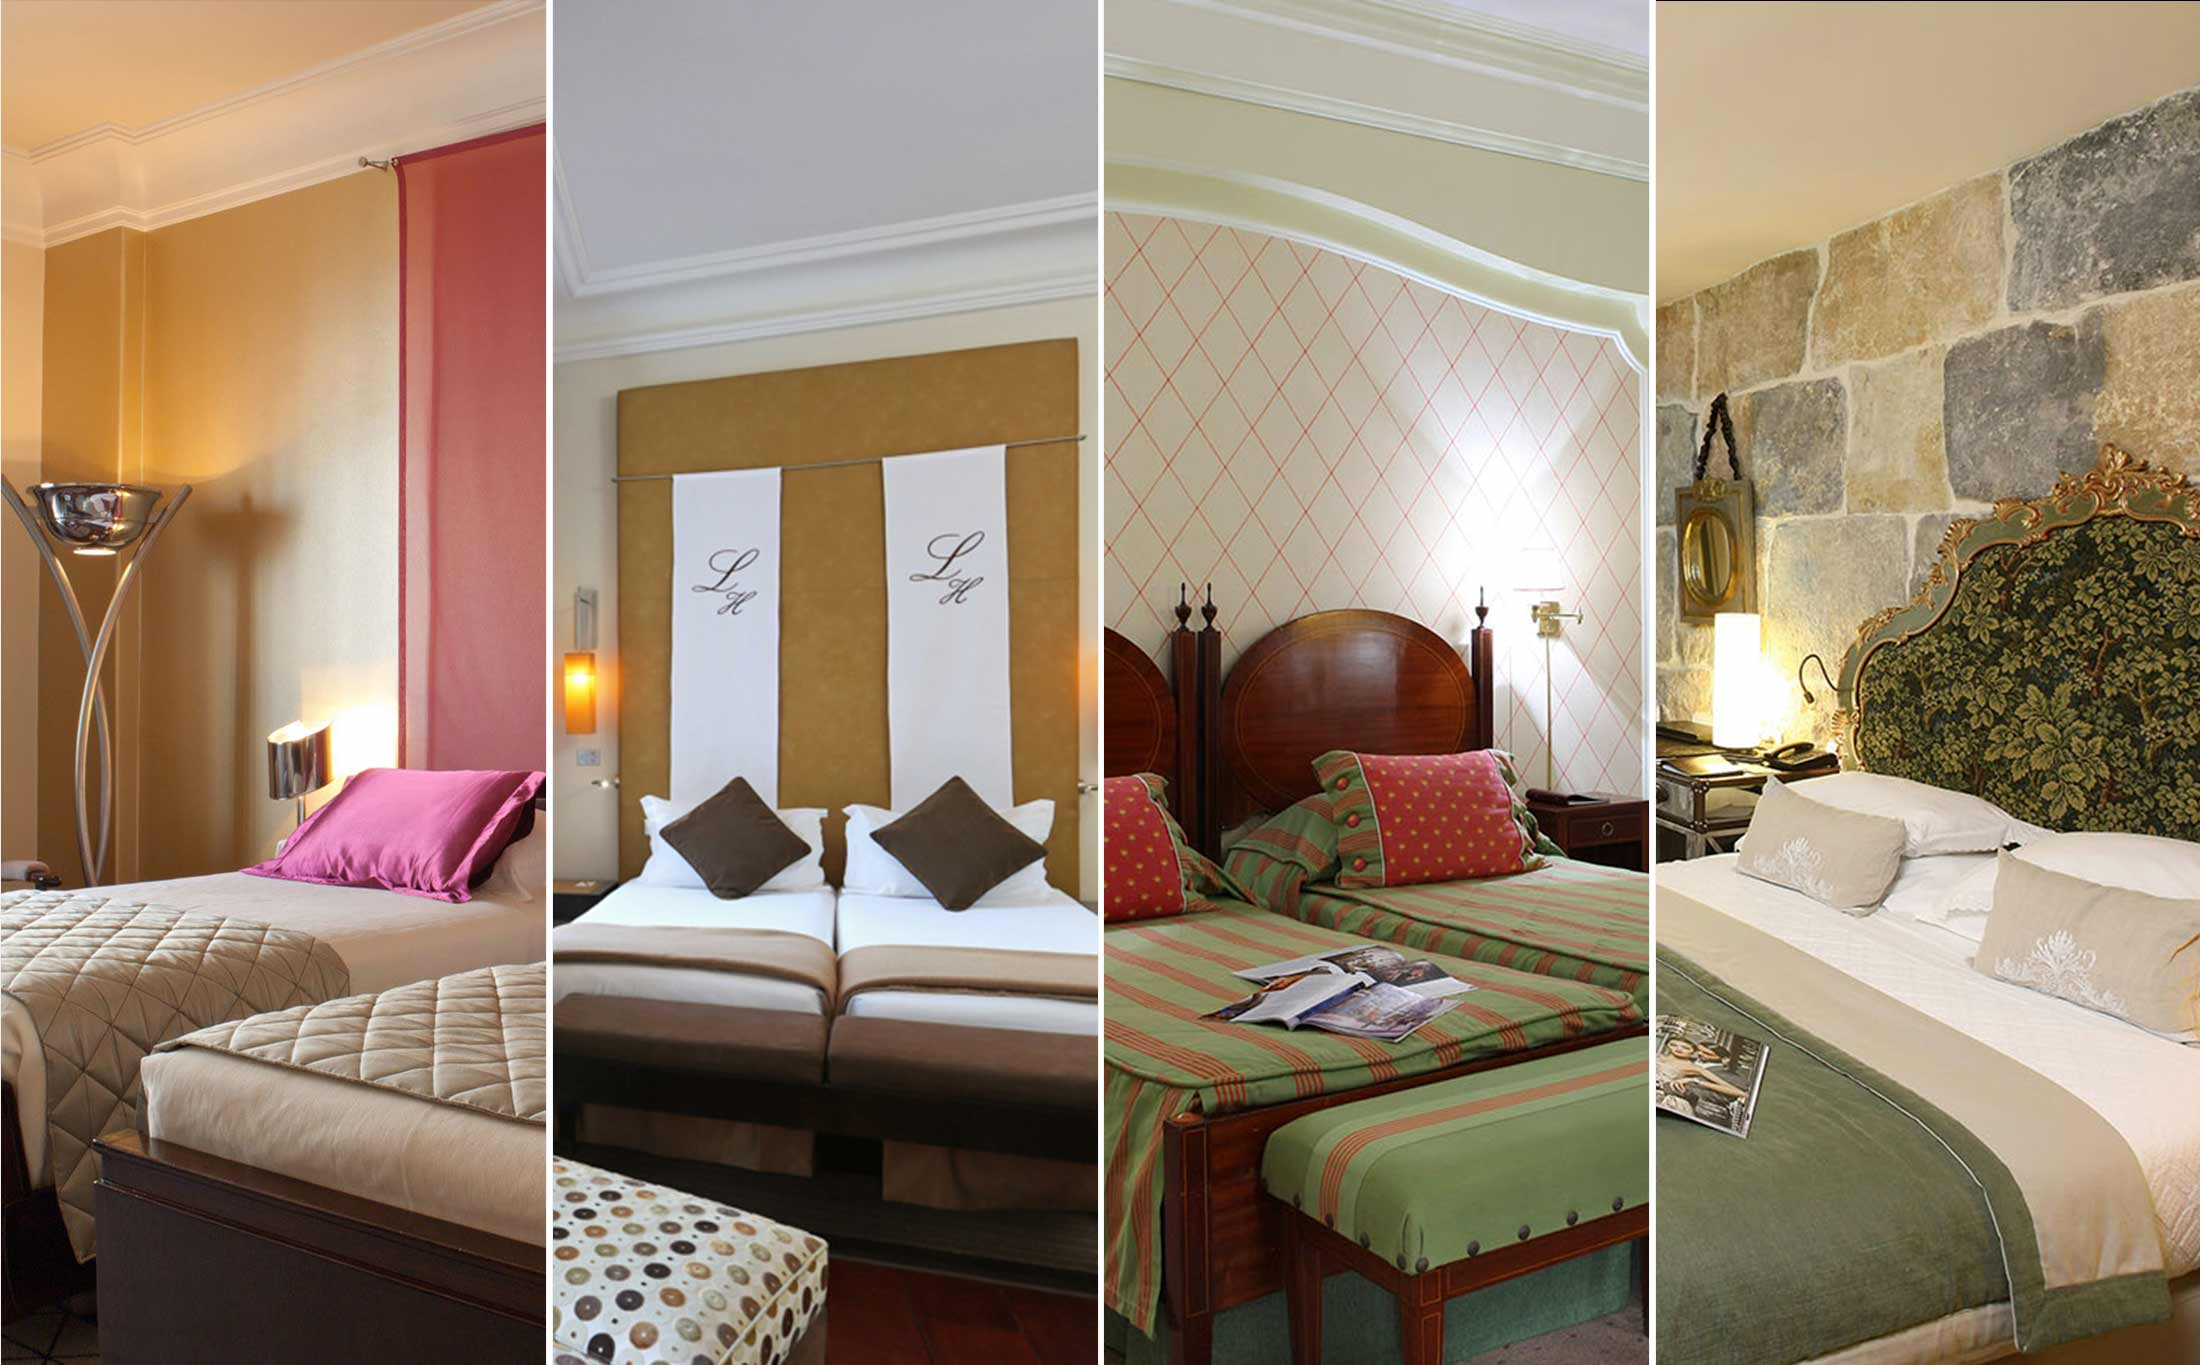 Top 25 Romantic Hotels from Tripadvisor distinguishes 4 Hideaways from Lisbon Heritage